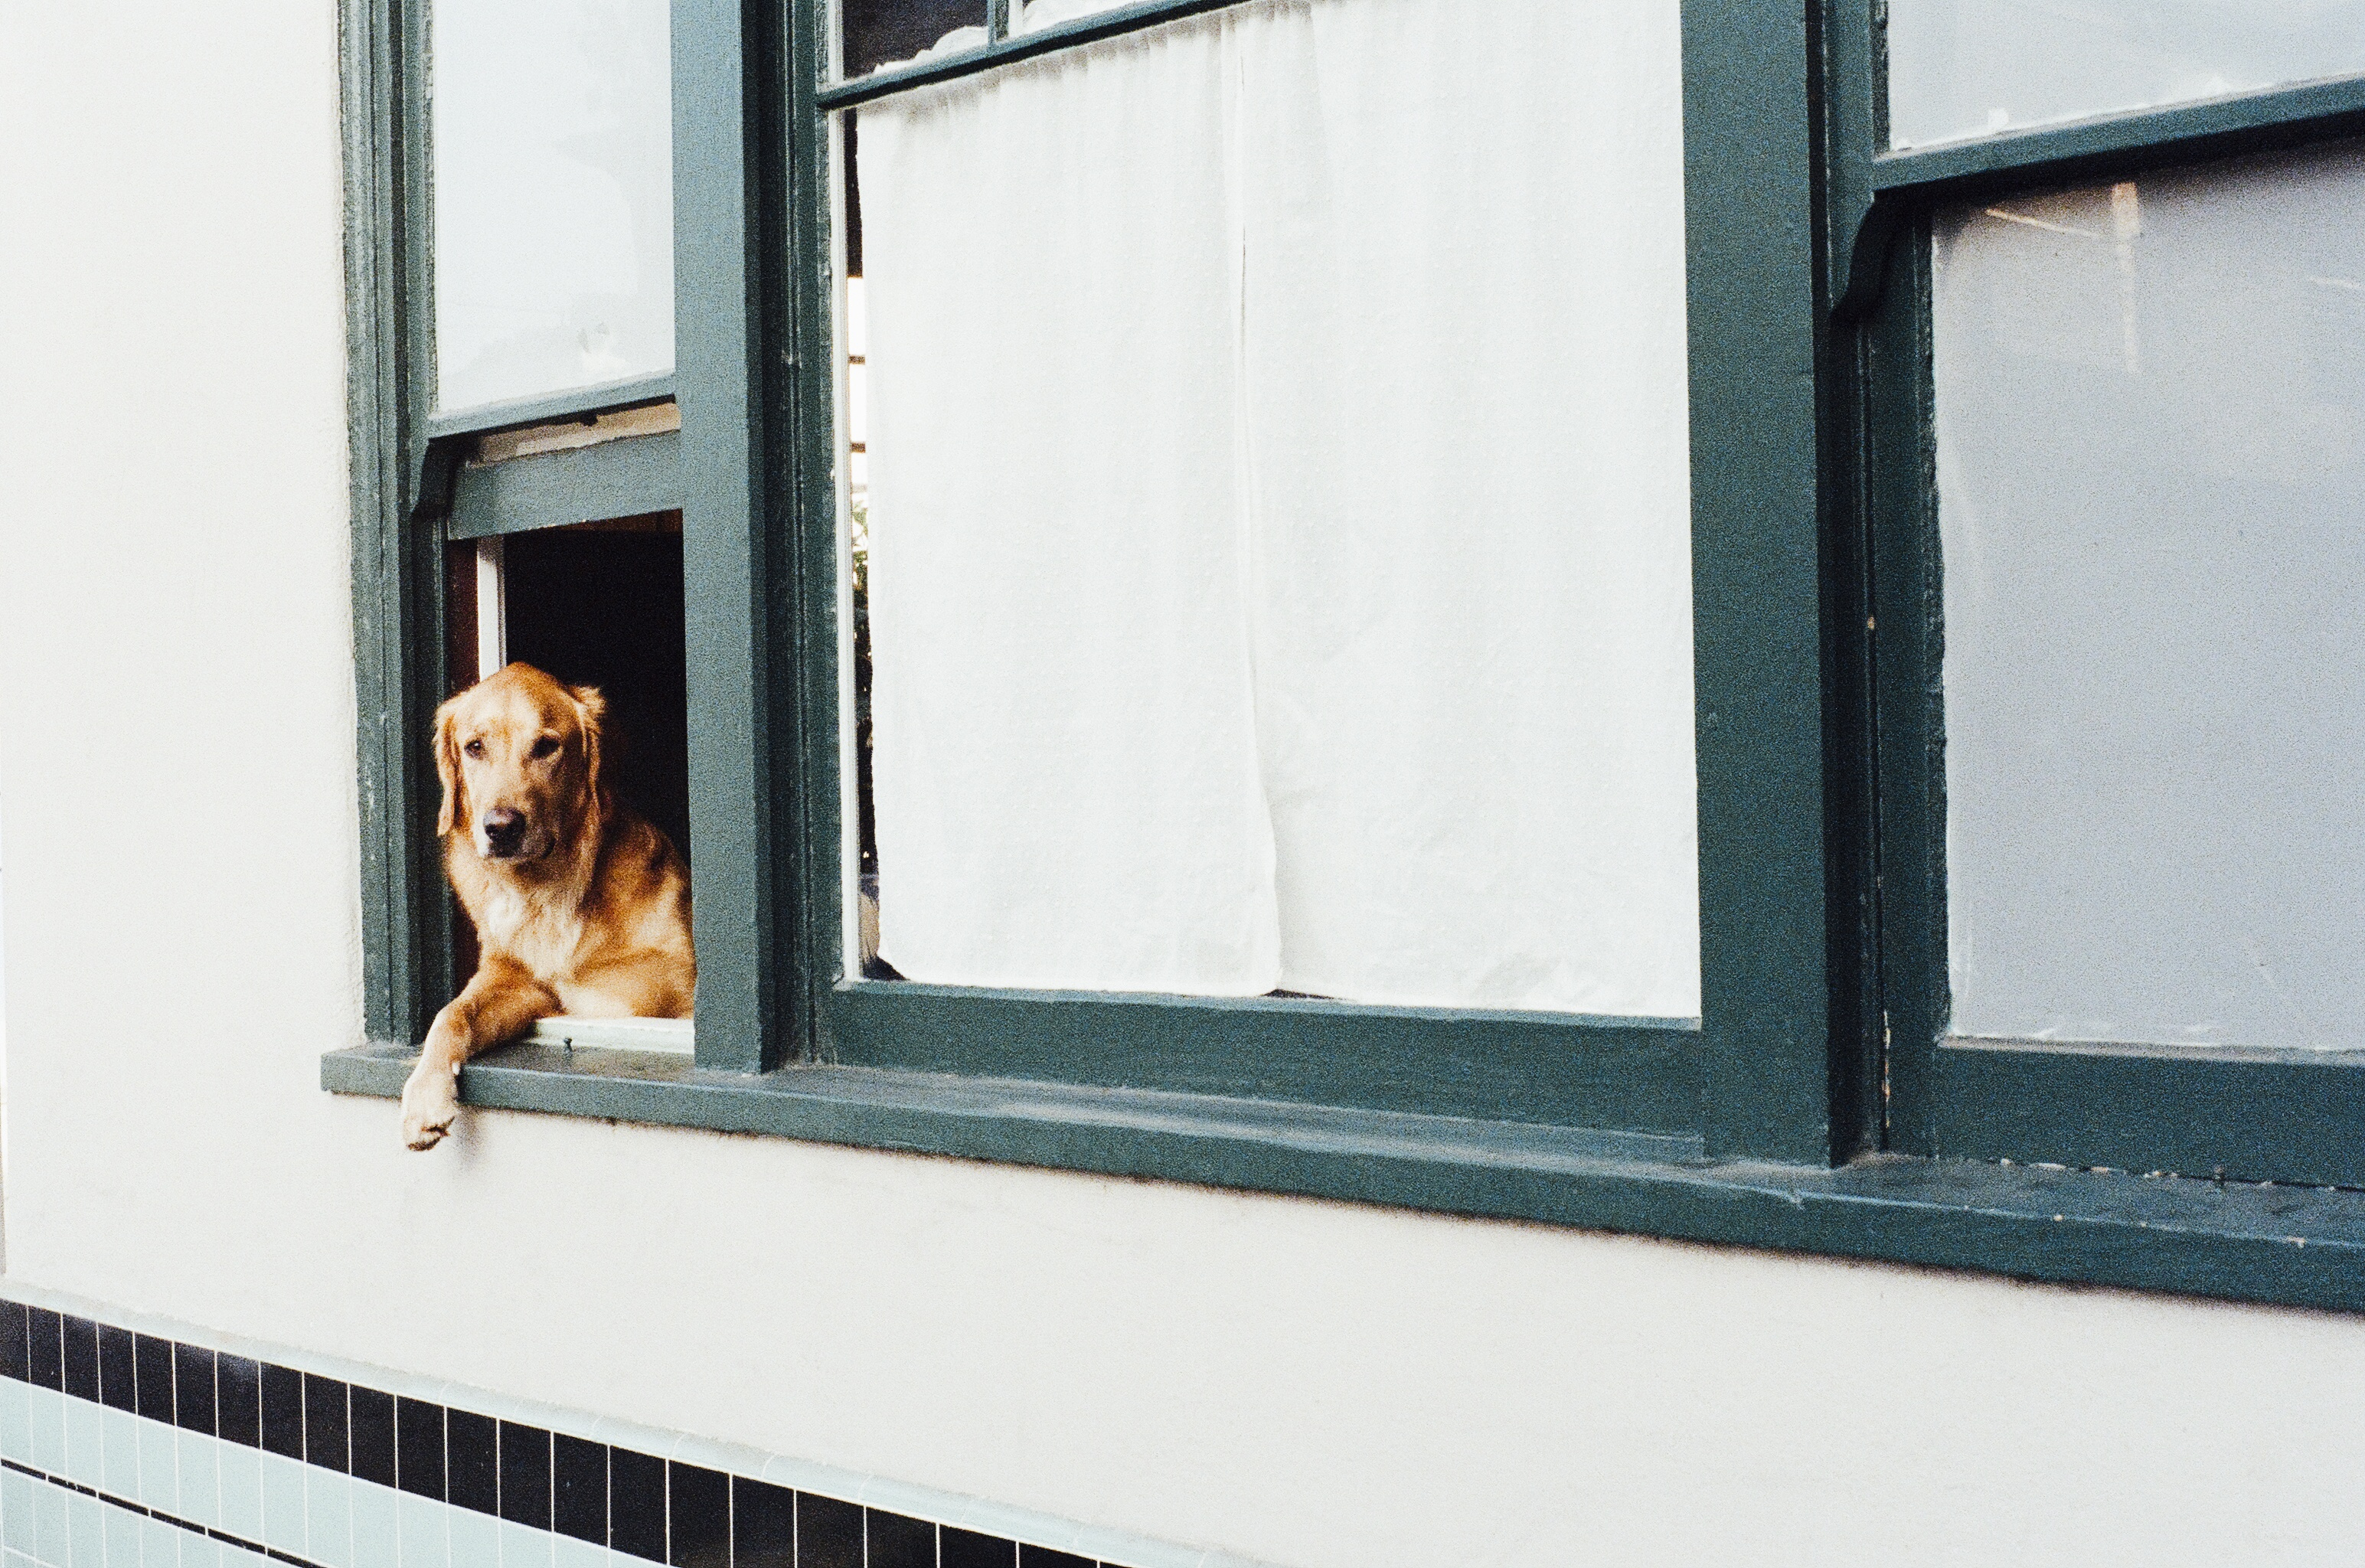 Pet-Friendly Tips for Your Home